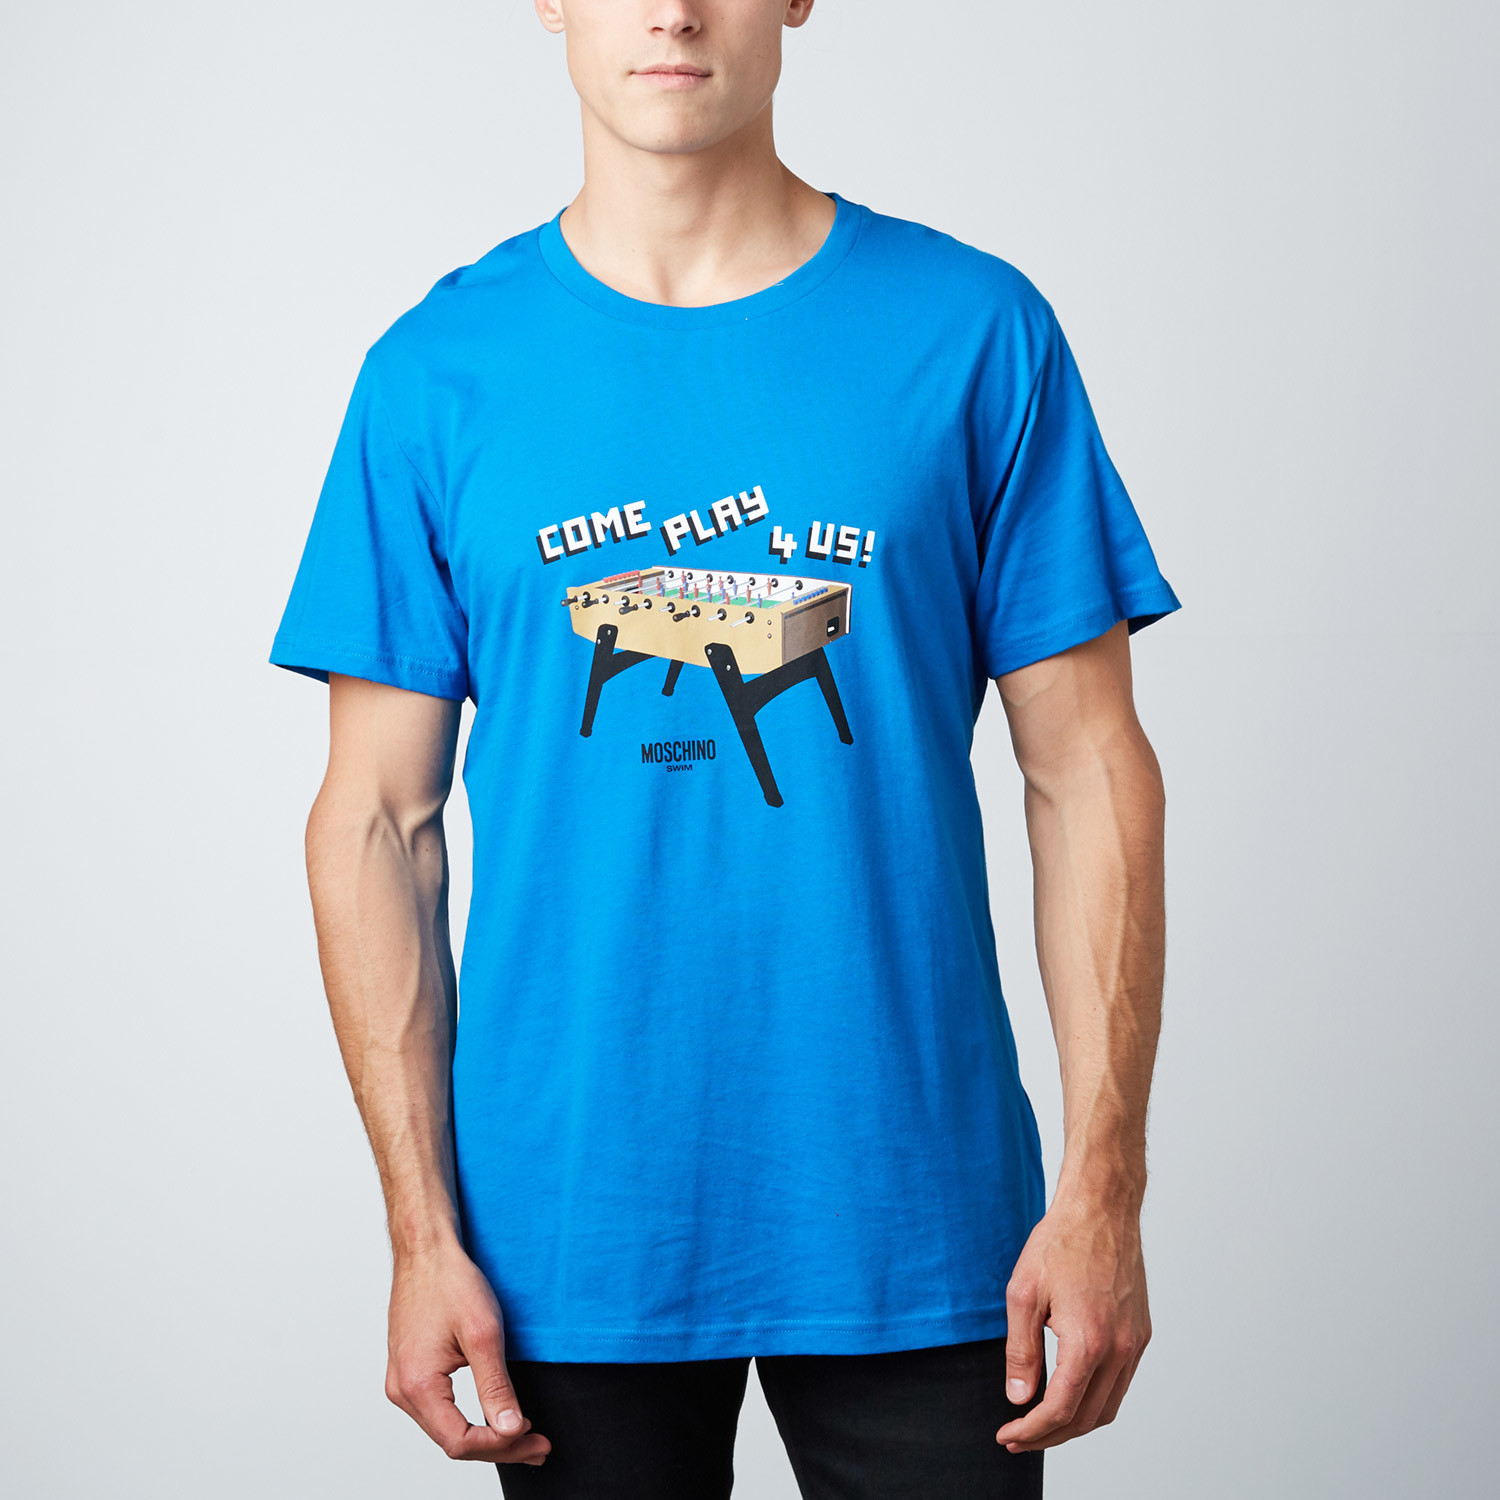 d456ae11 Moschino // Foozball Graphic Tee // Blue (XS) - Moschino - Touch of ...